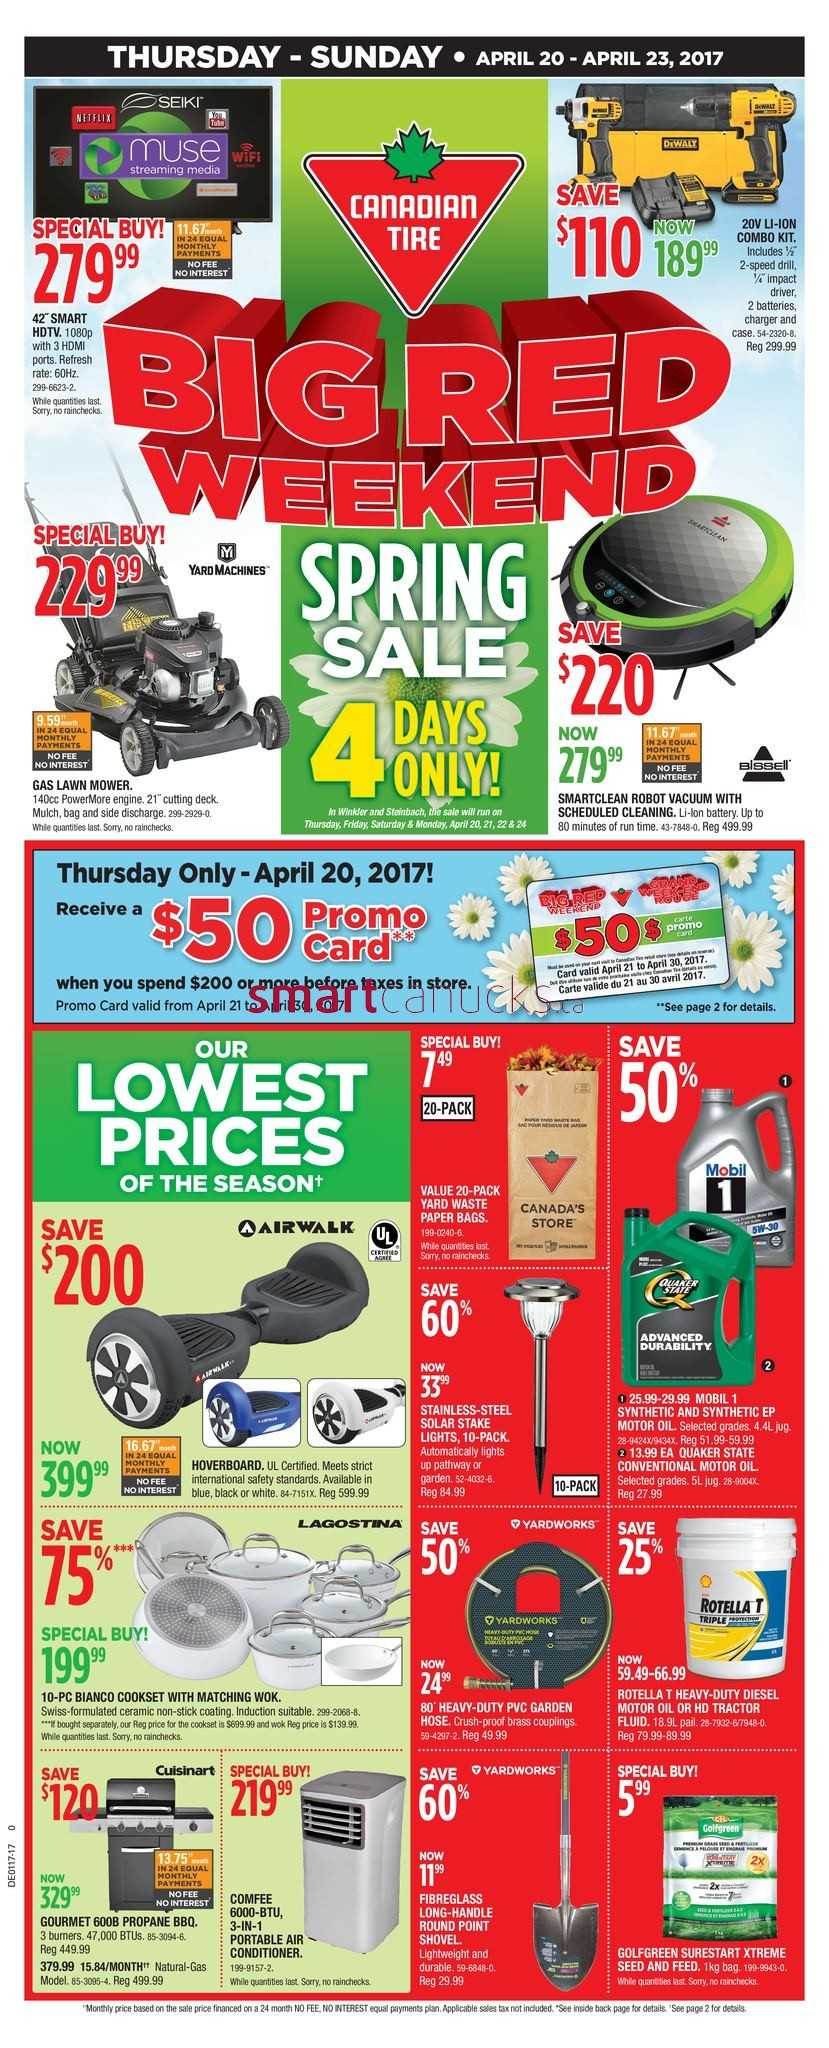 canadian tire flyers canadian tire west big red weekend flyer 20 to 23